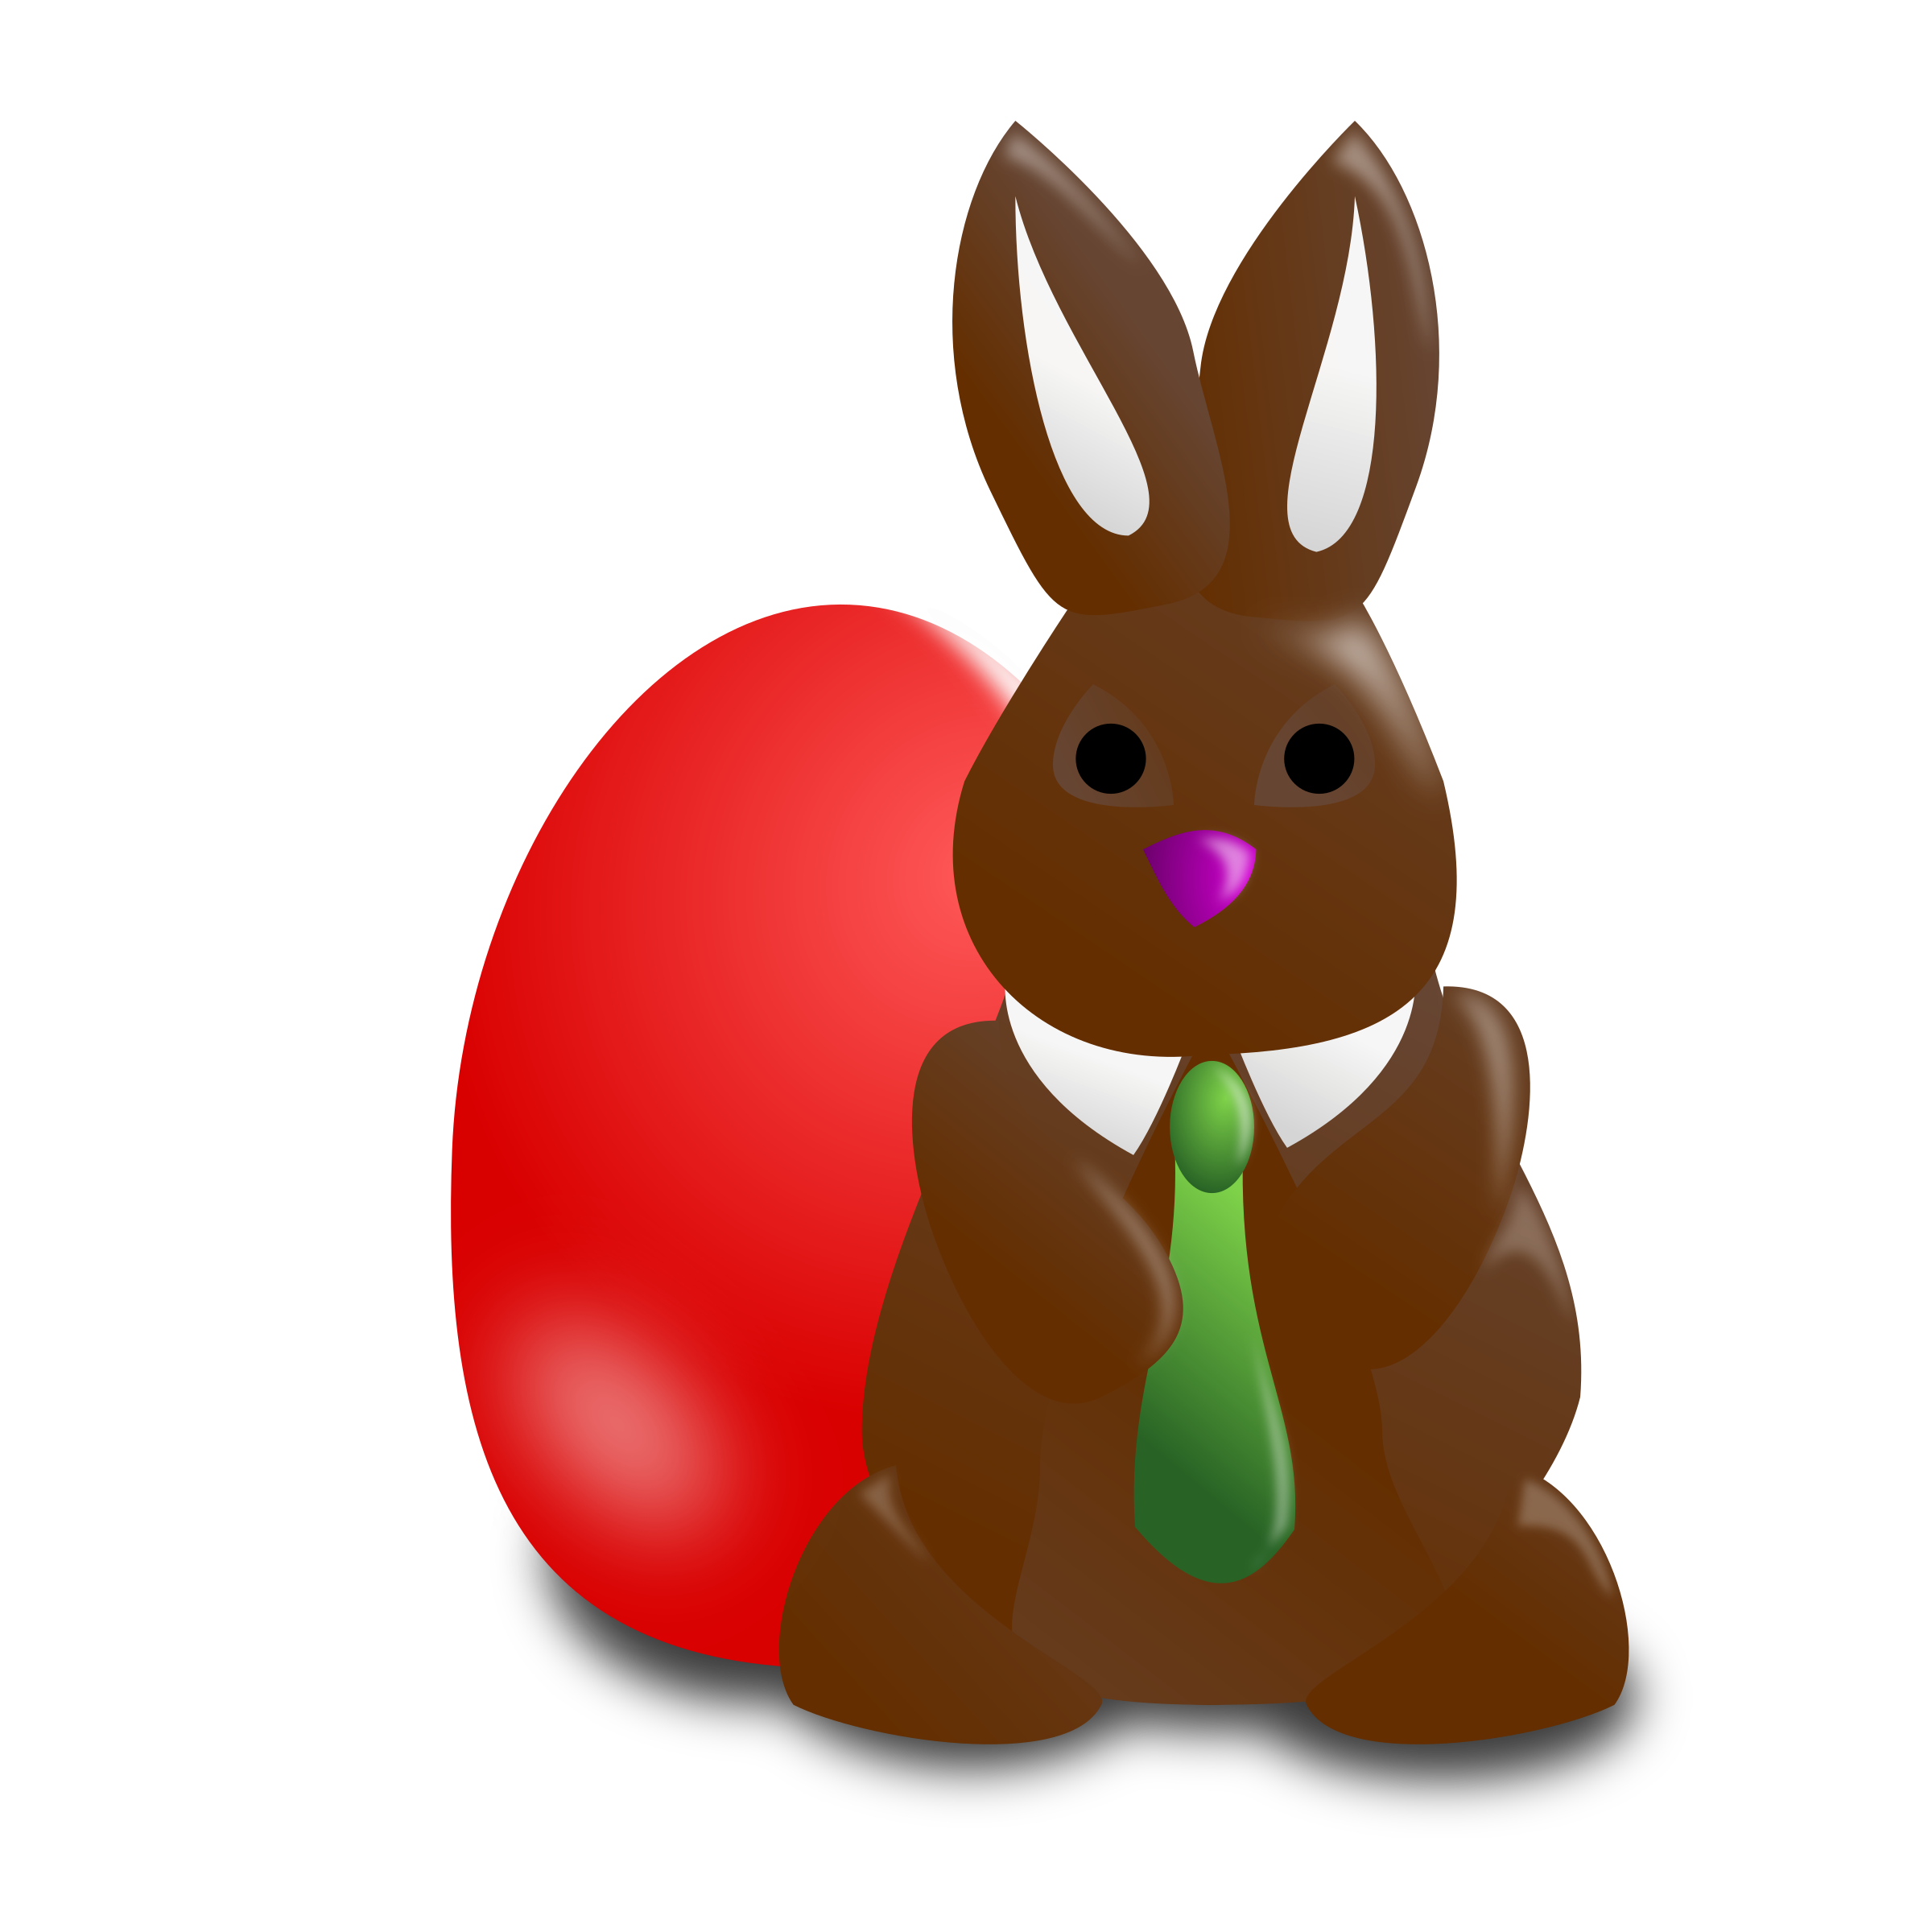 File:Easter icon flip (clipart).png.